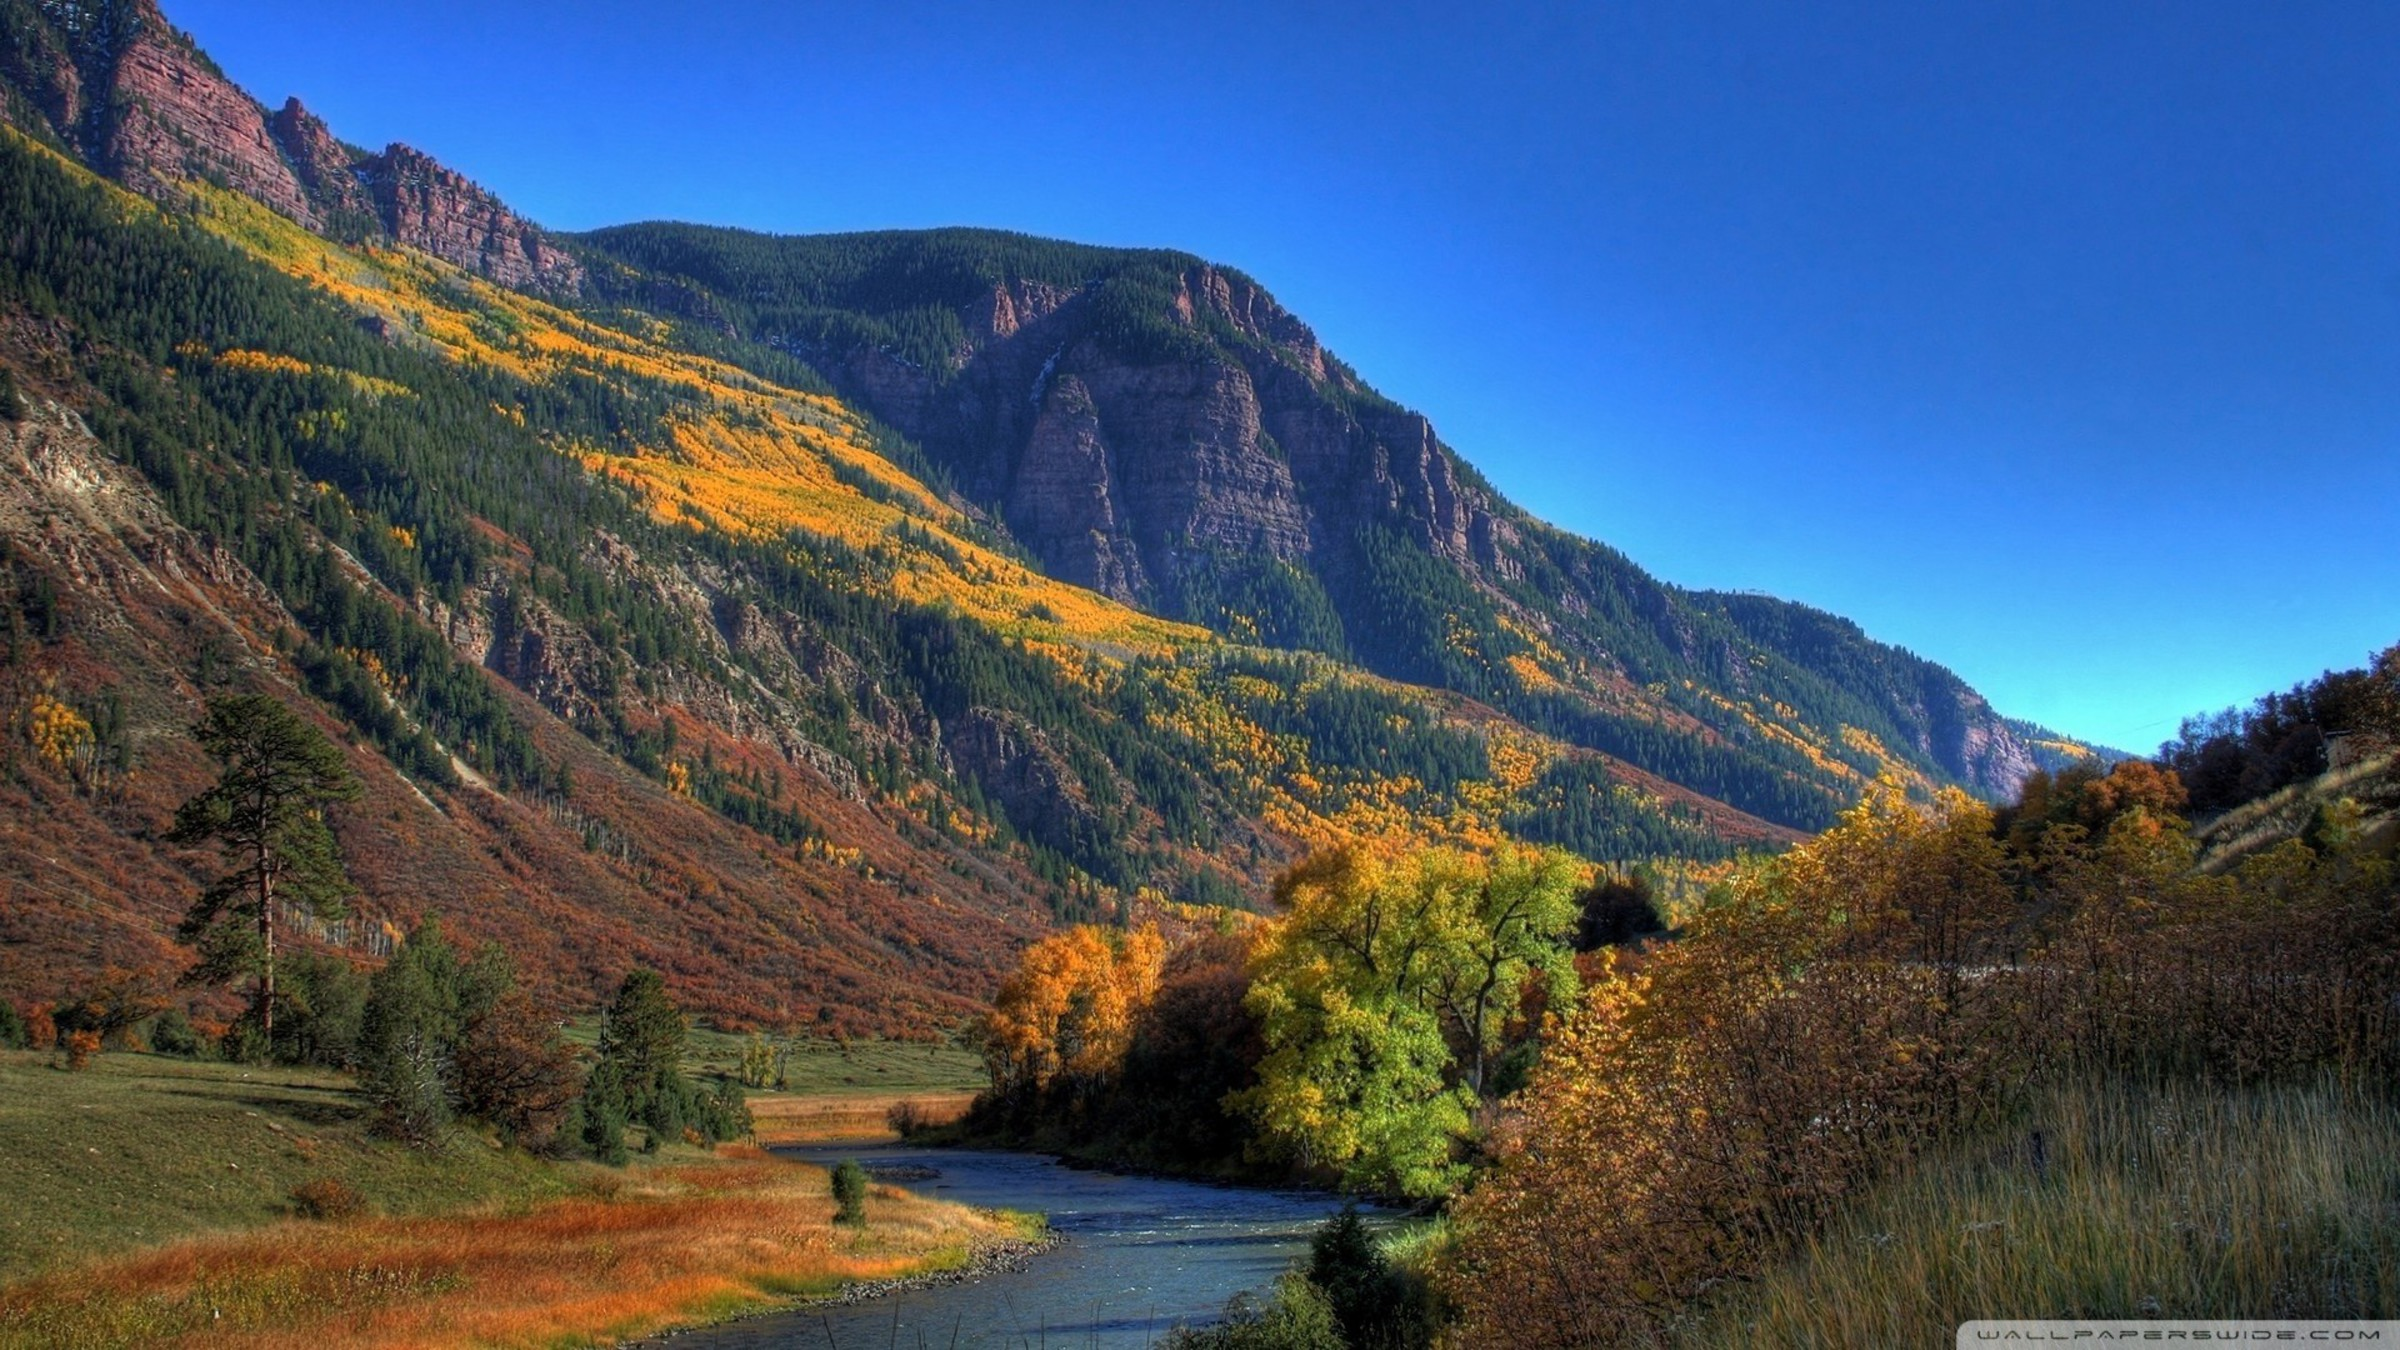 Autumn In A River Valley Wallpaper